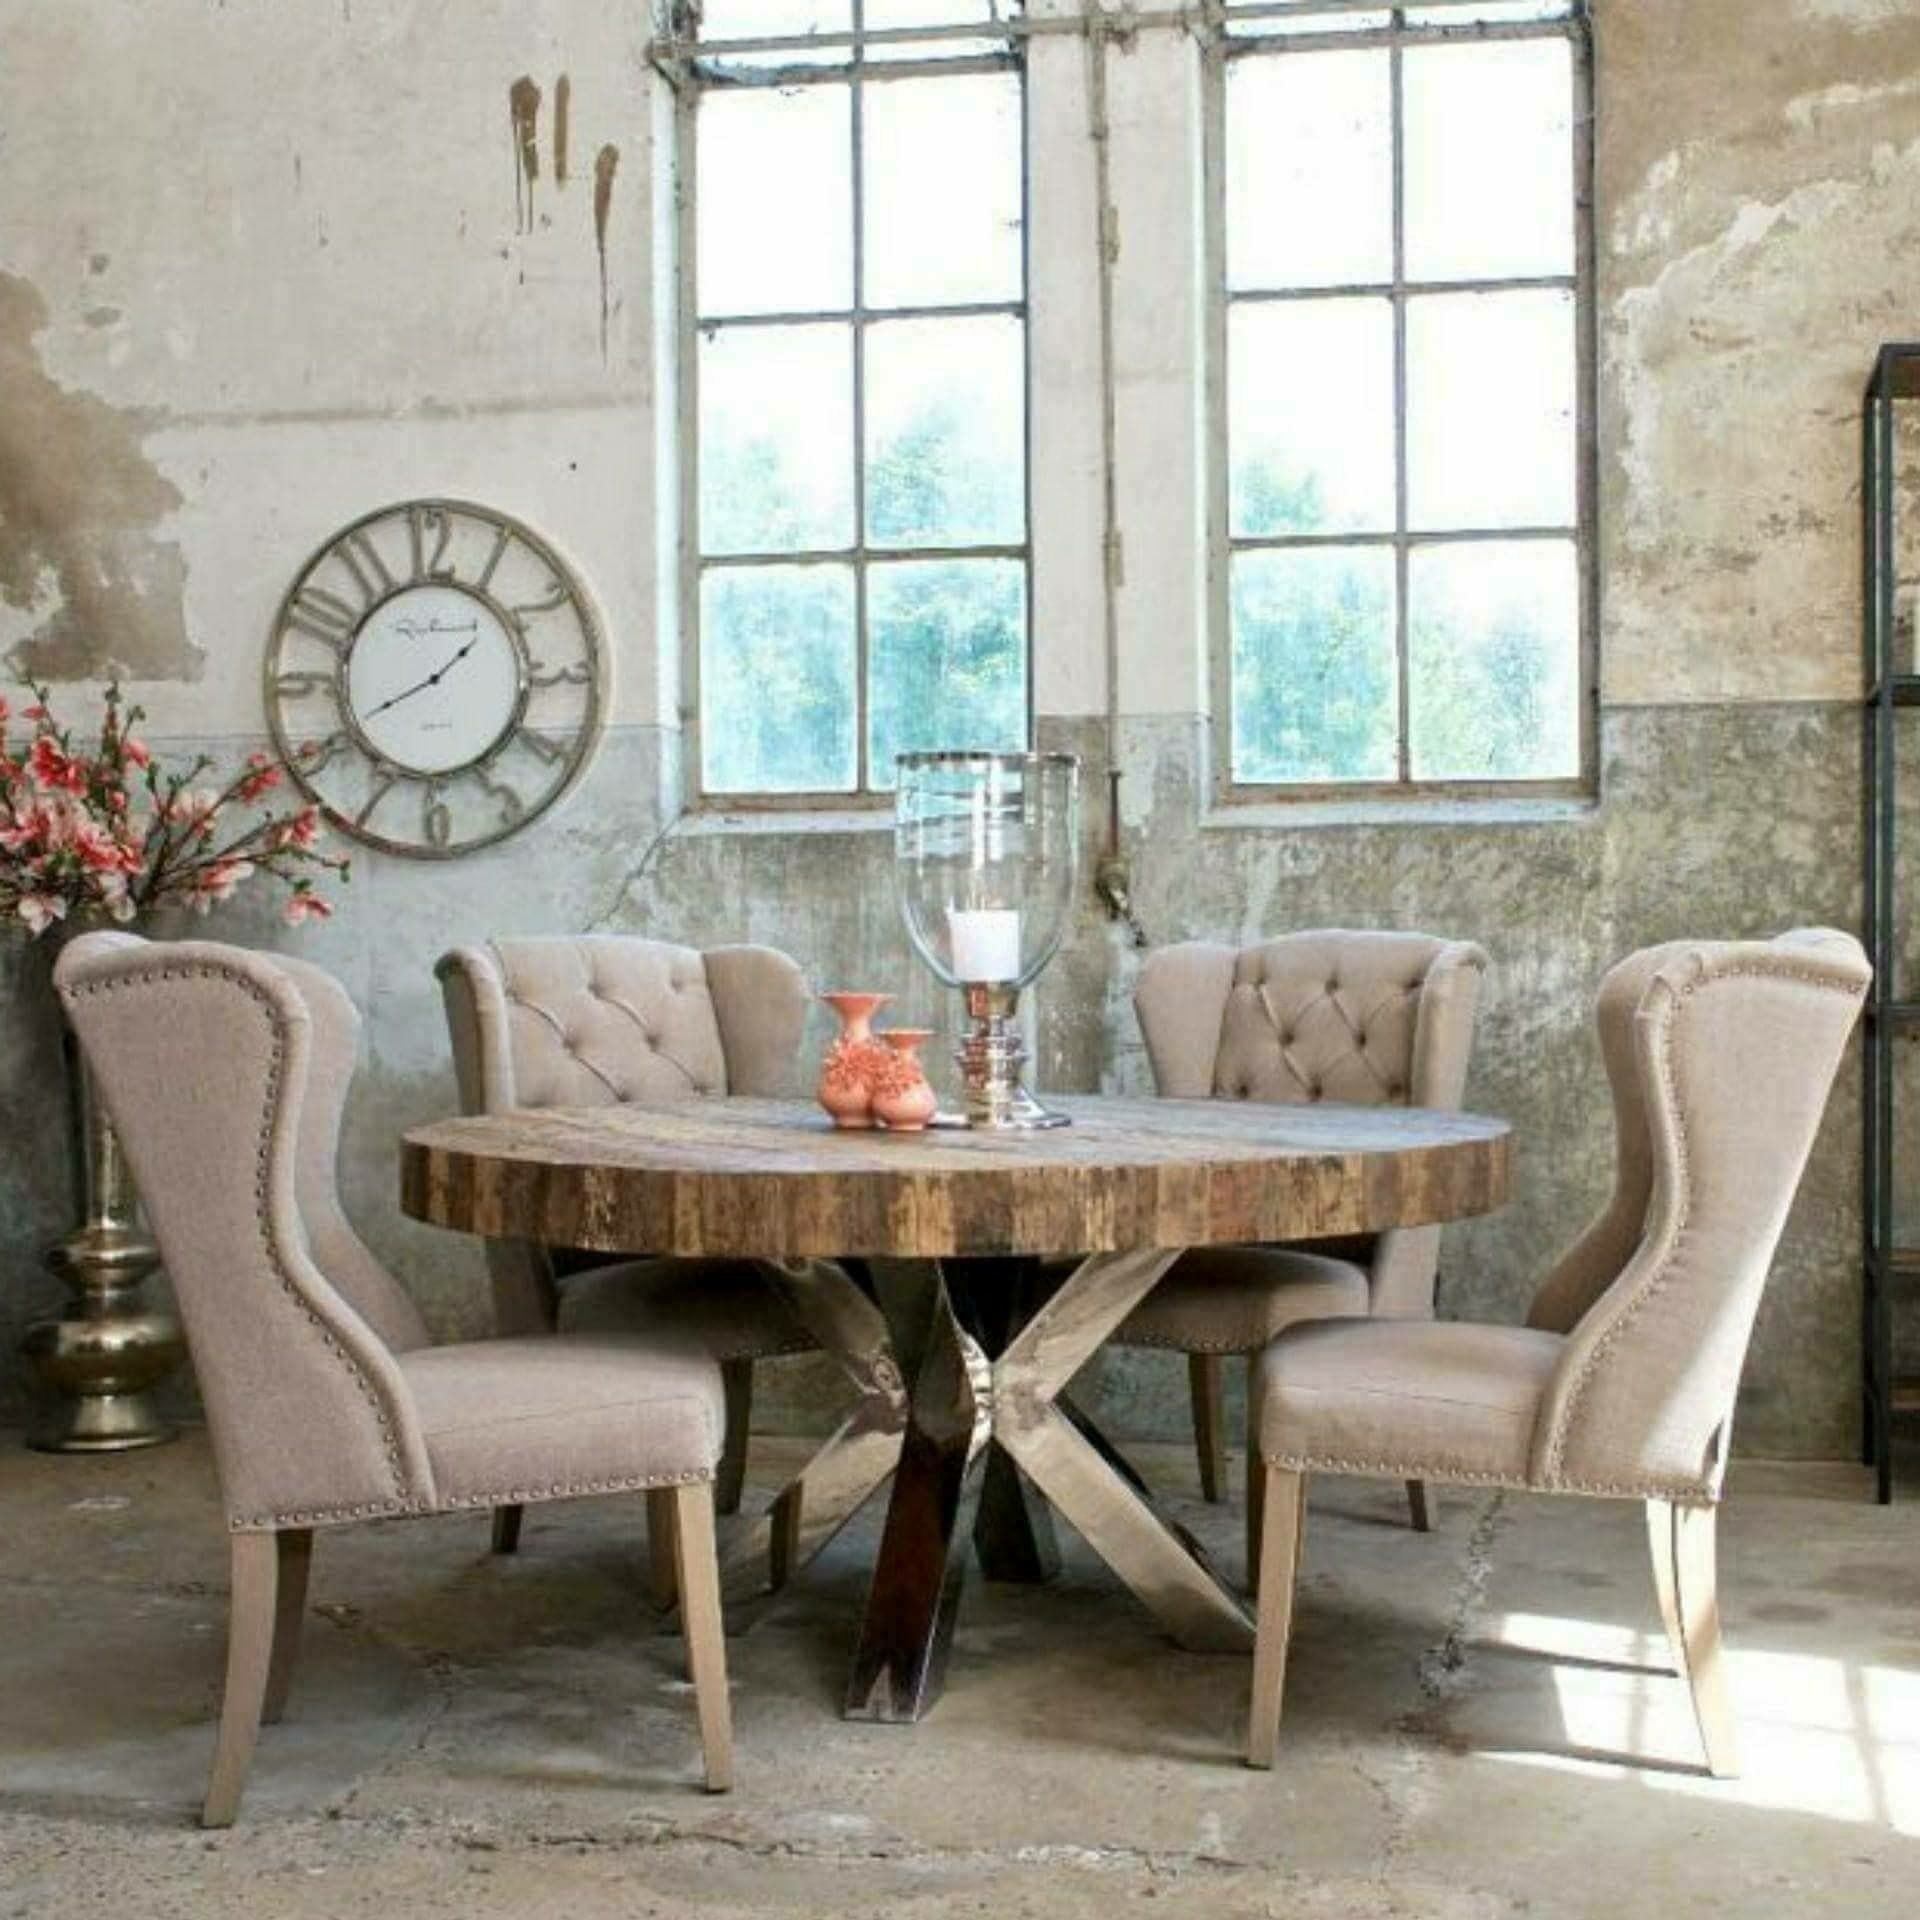 Pin by Heather Evens on *French Affair* Furniture, Home